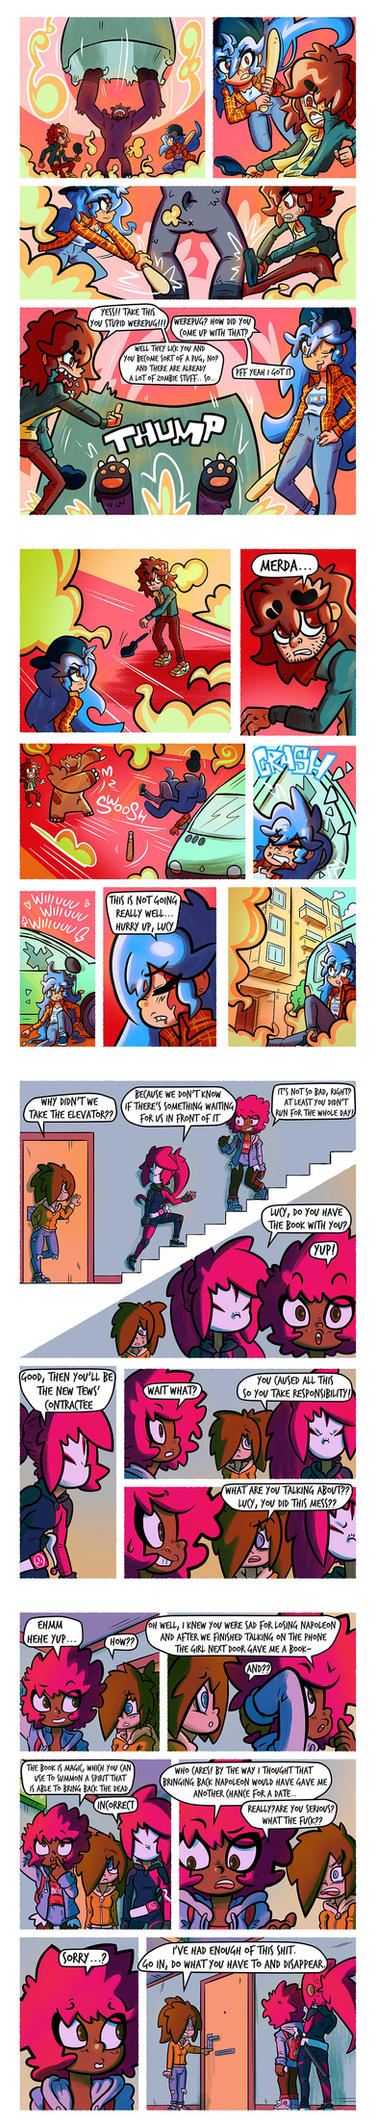 UIA Chapter 2 Page 8-11 by glitchyberry